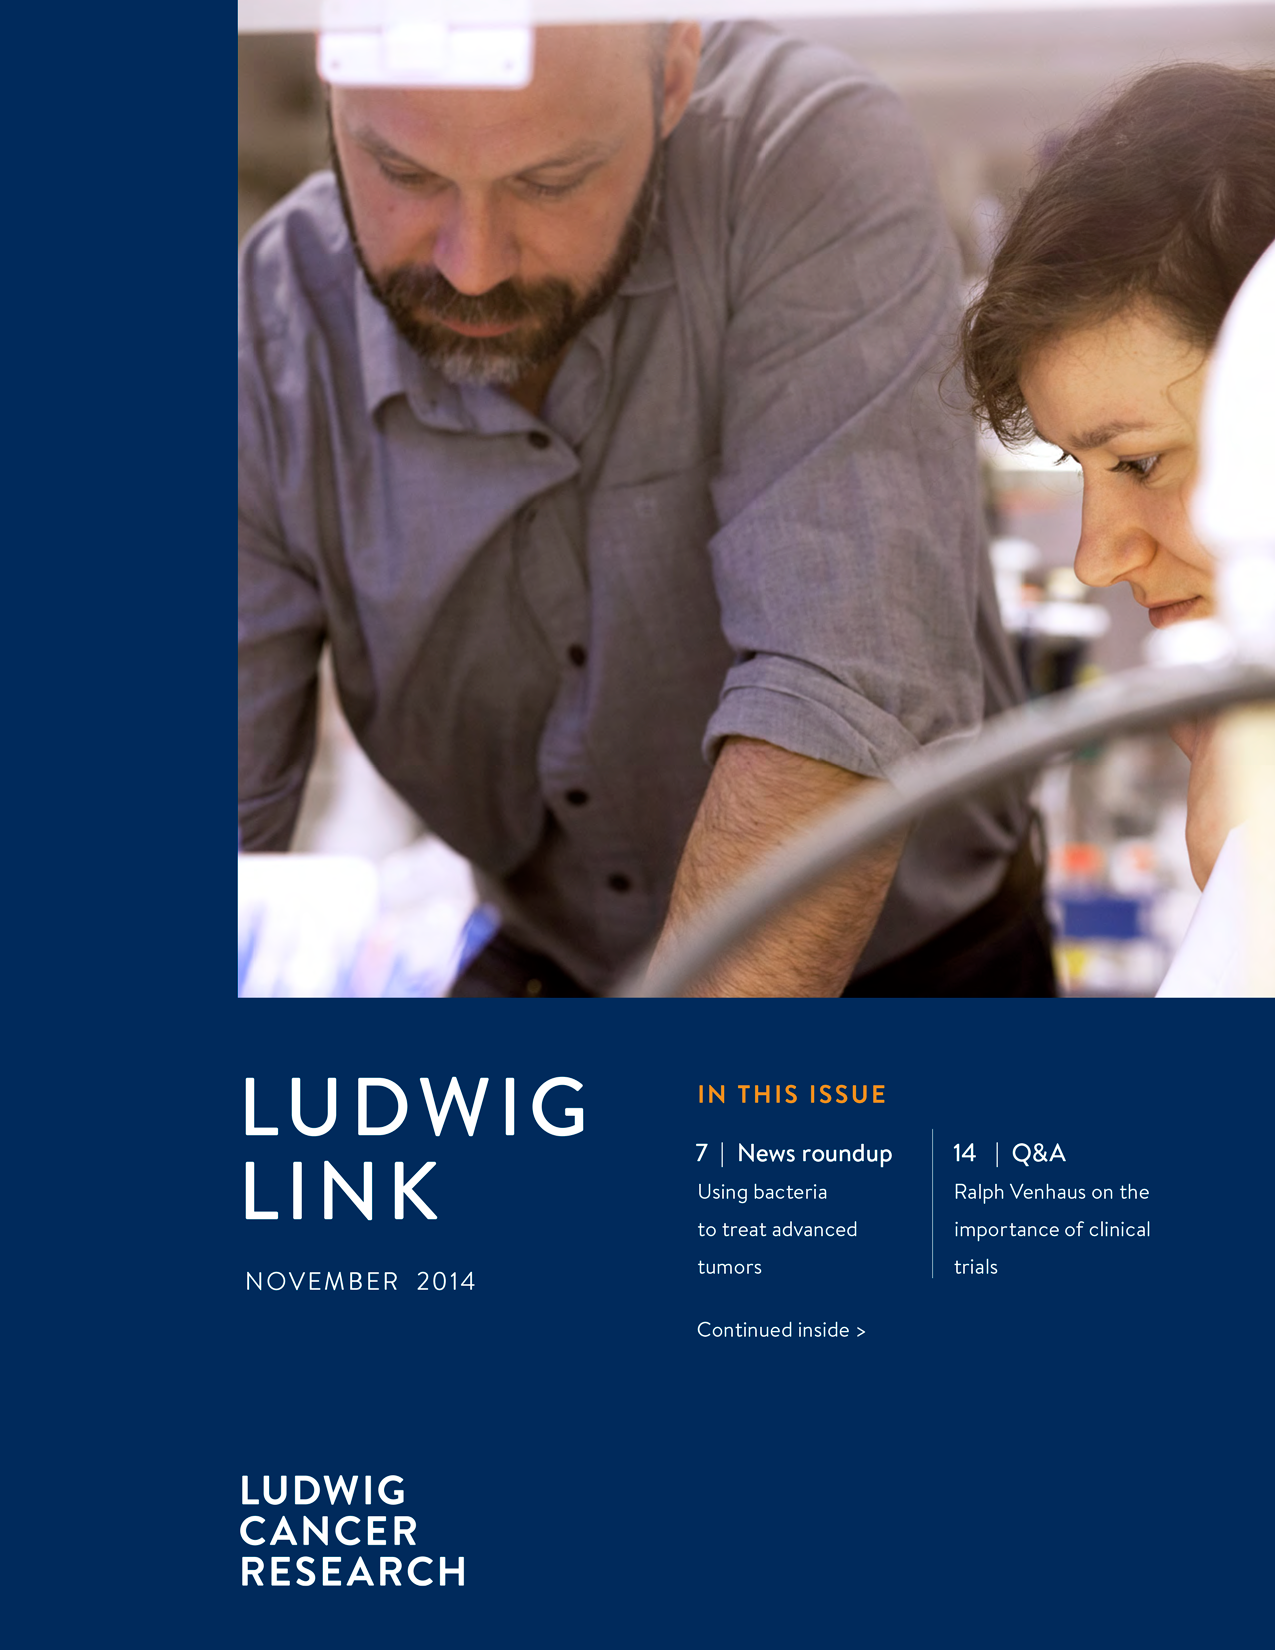 Ludwig Link November 2014 cover